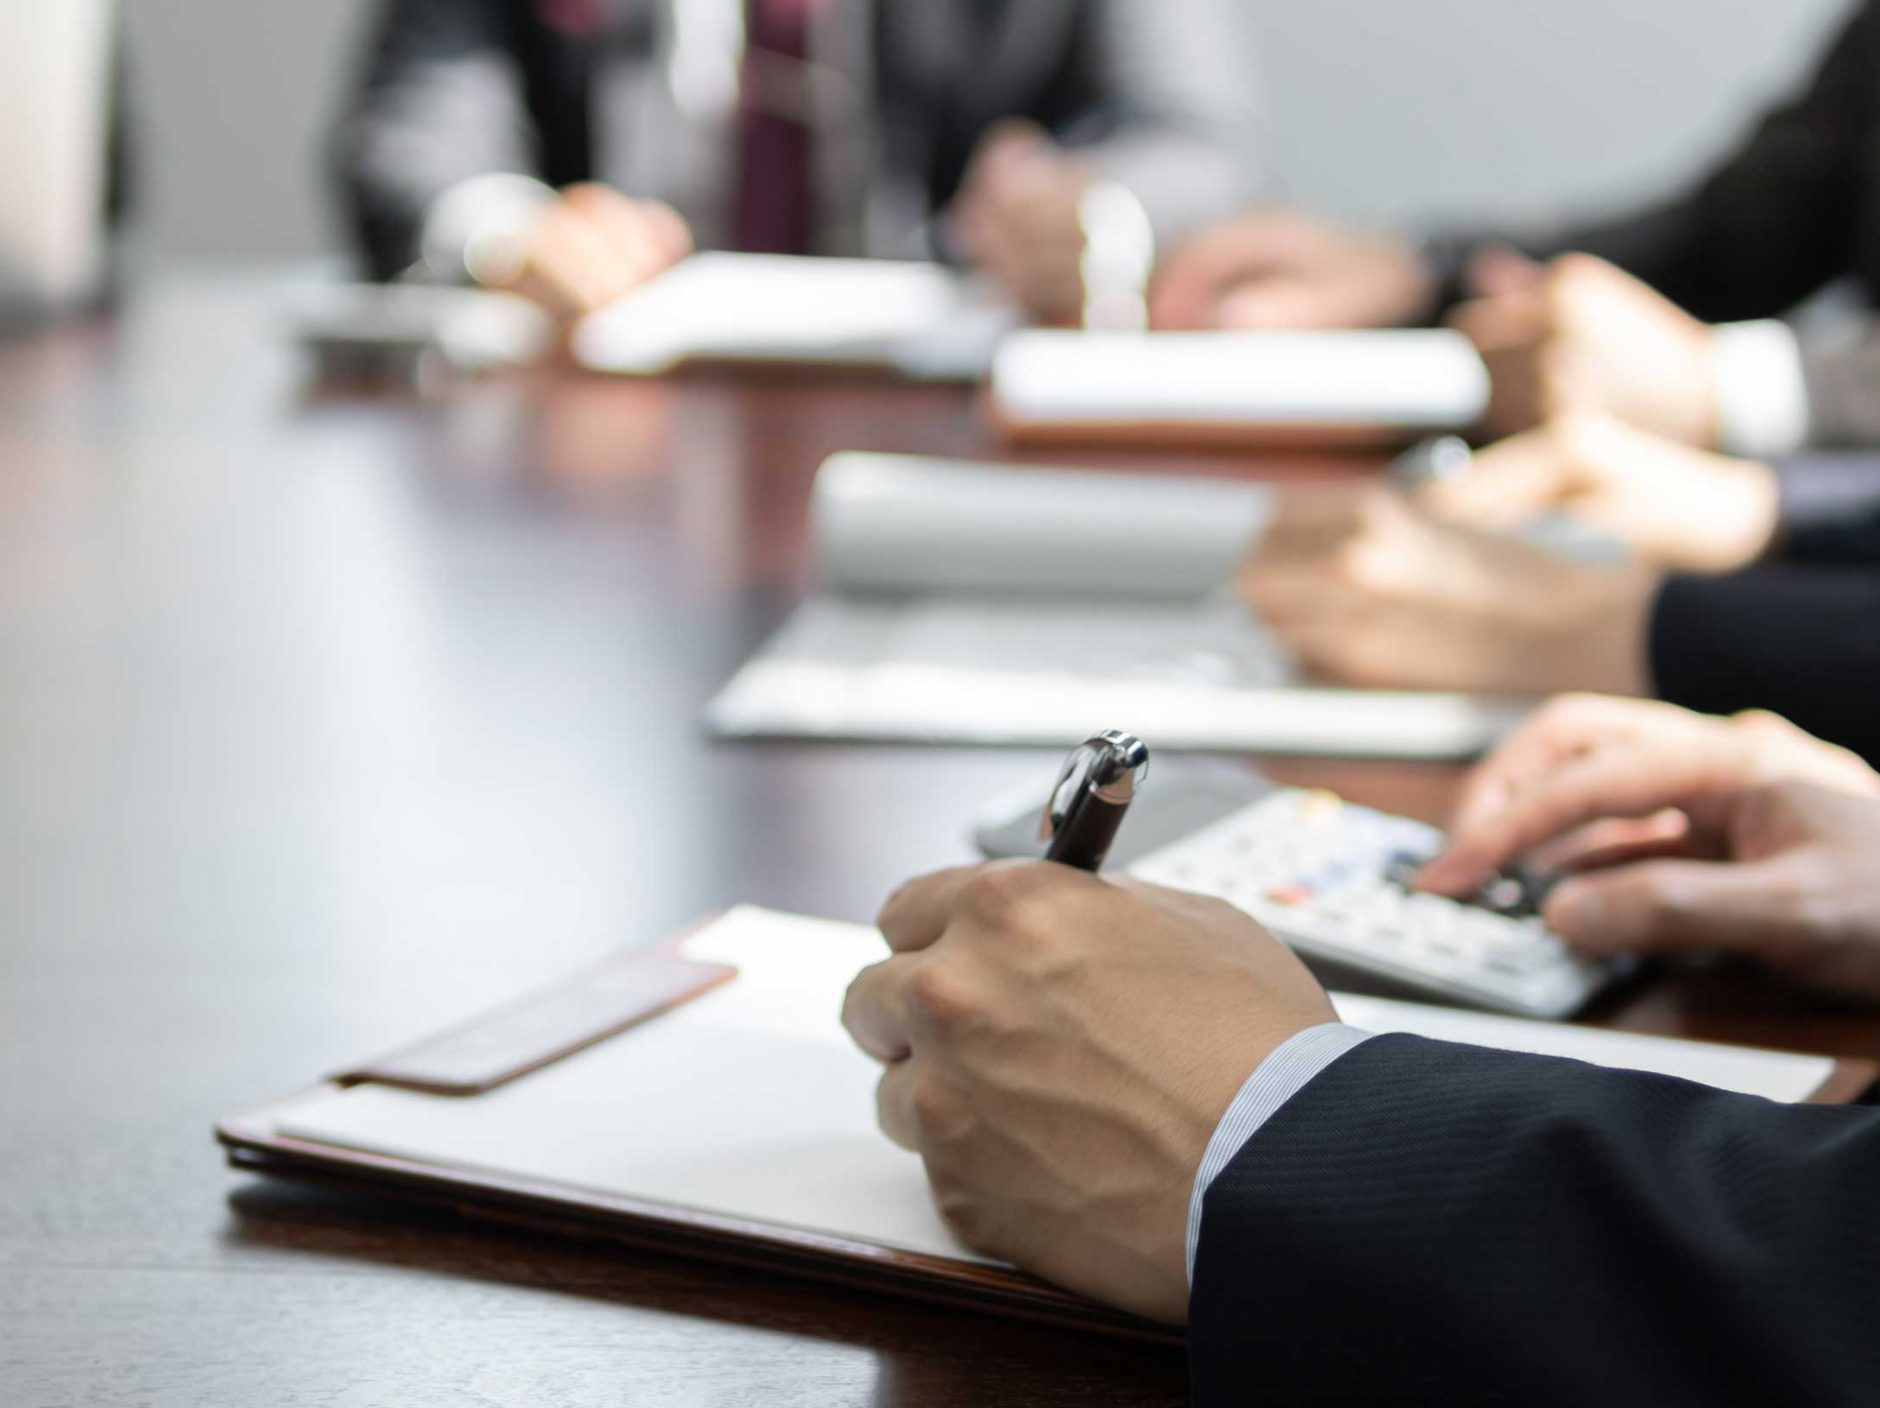 Someone writing on a clipboard, during a meeting